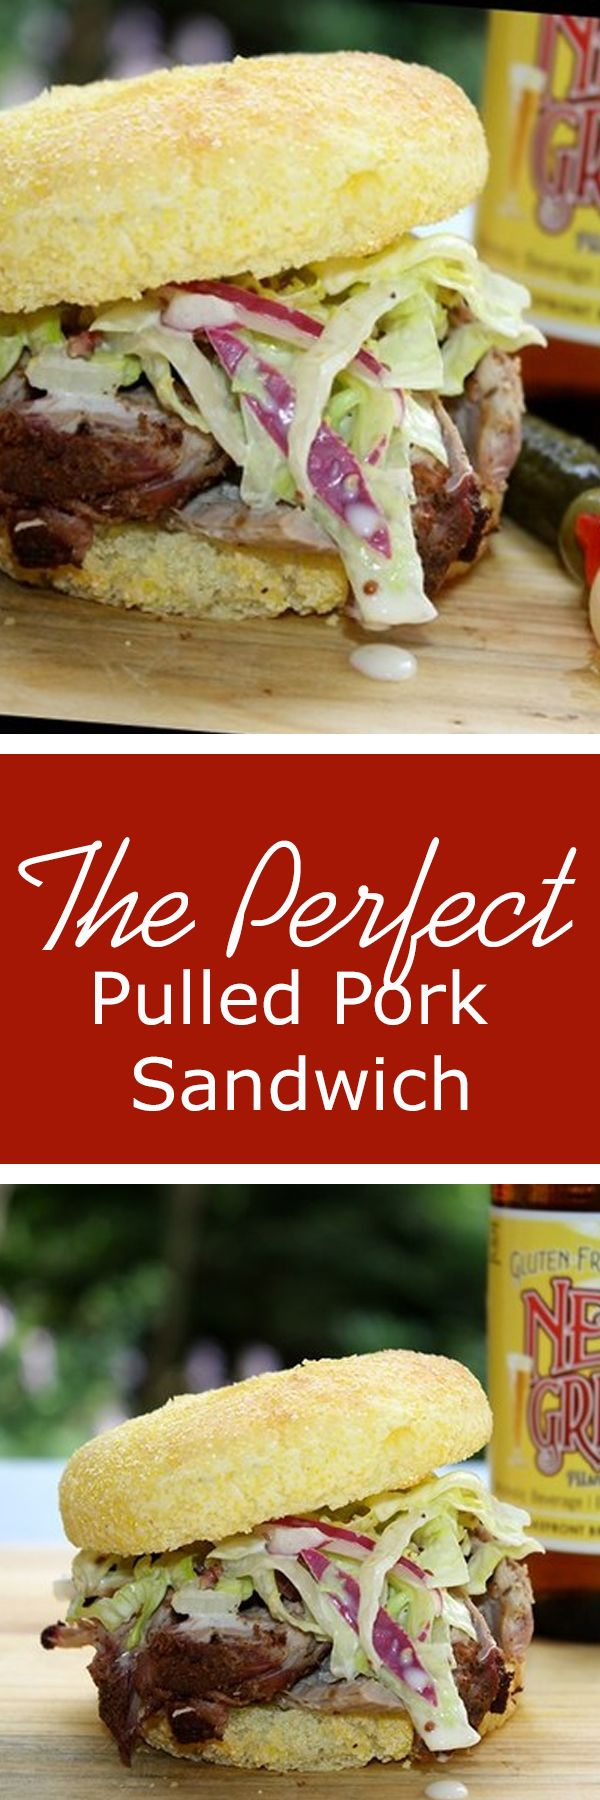 The perfect pulled pork sandwich recipe. Yum!